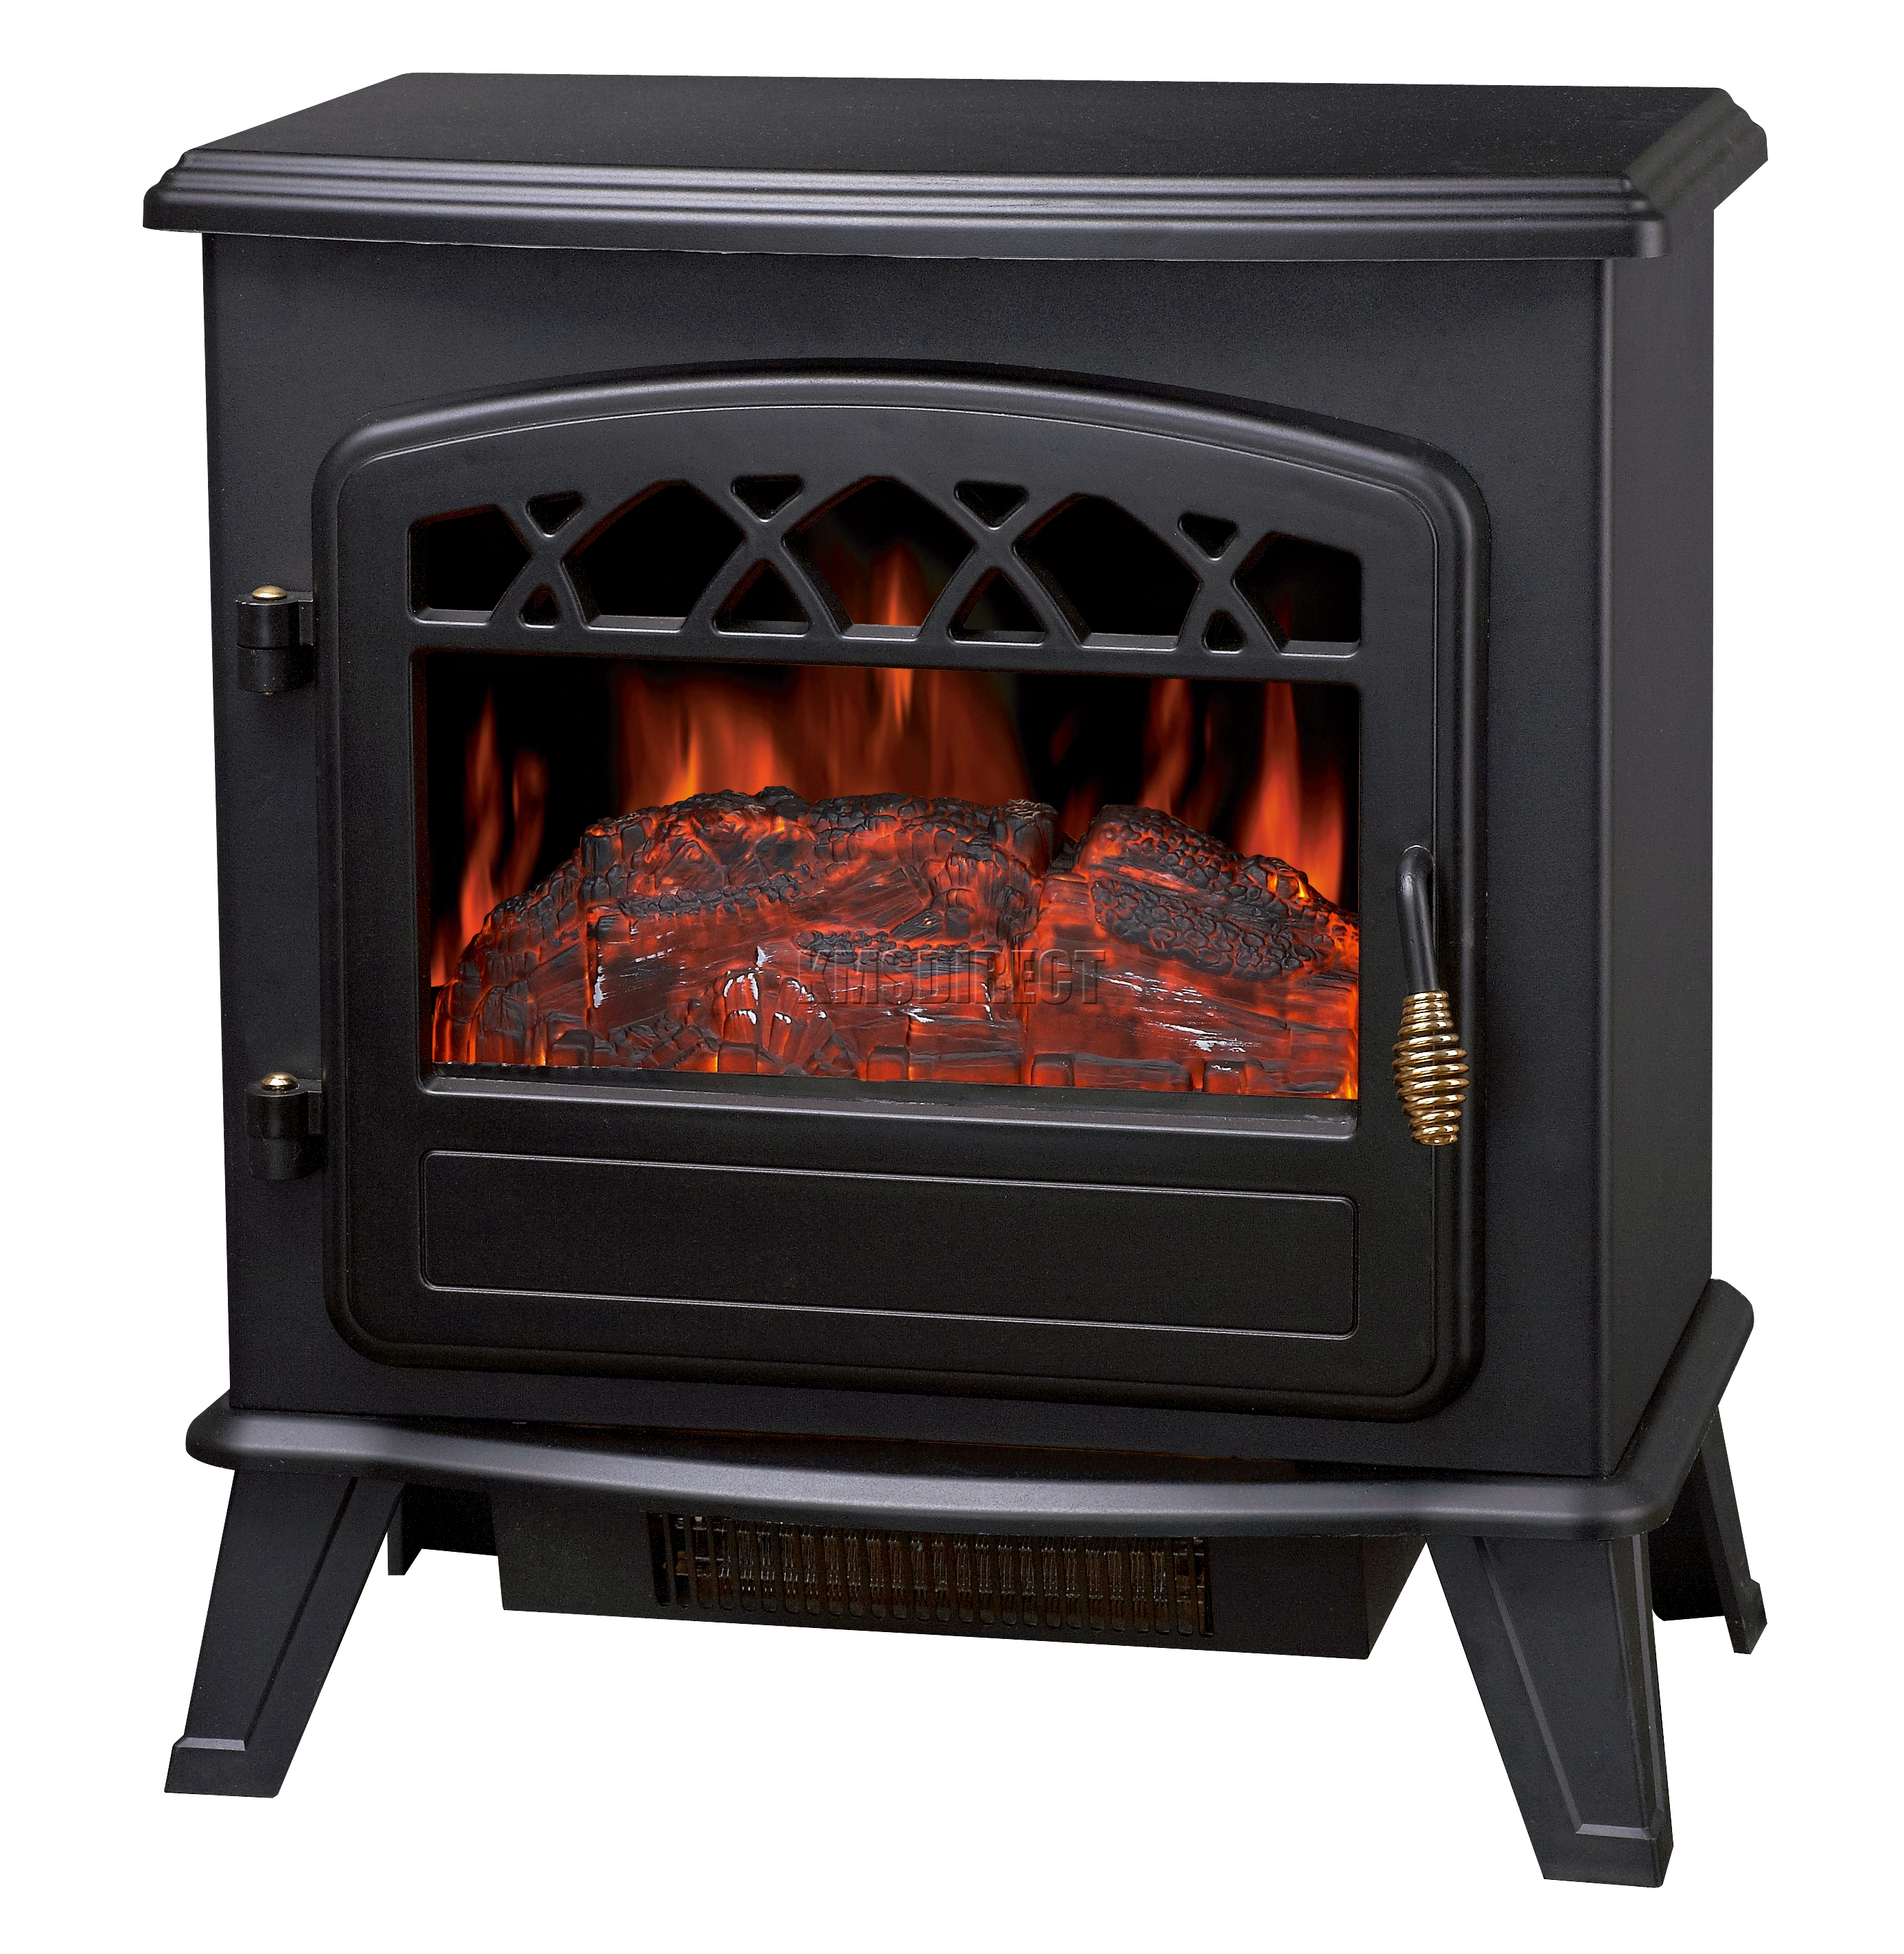 Electric Fireplace Logs That Heat: Log Burning Flame Effect 1850W Electric Fire Heater